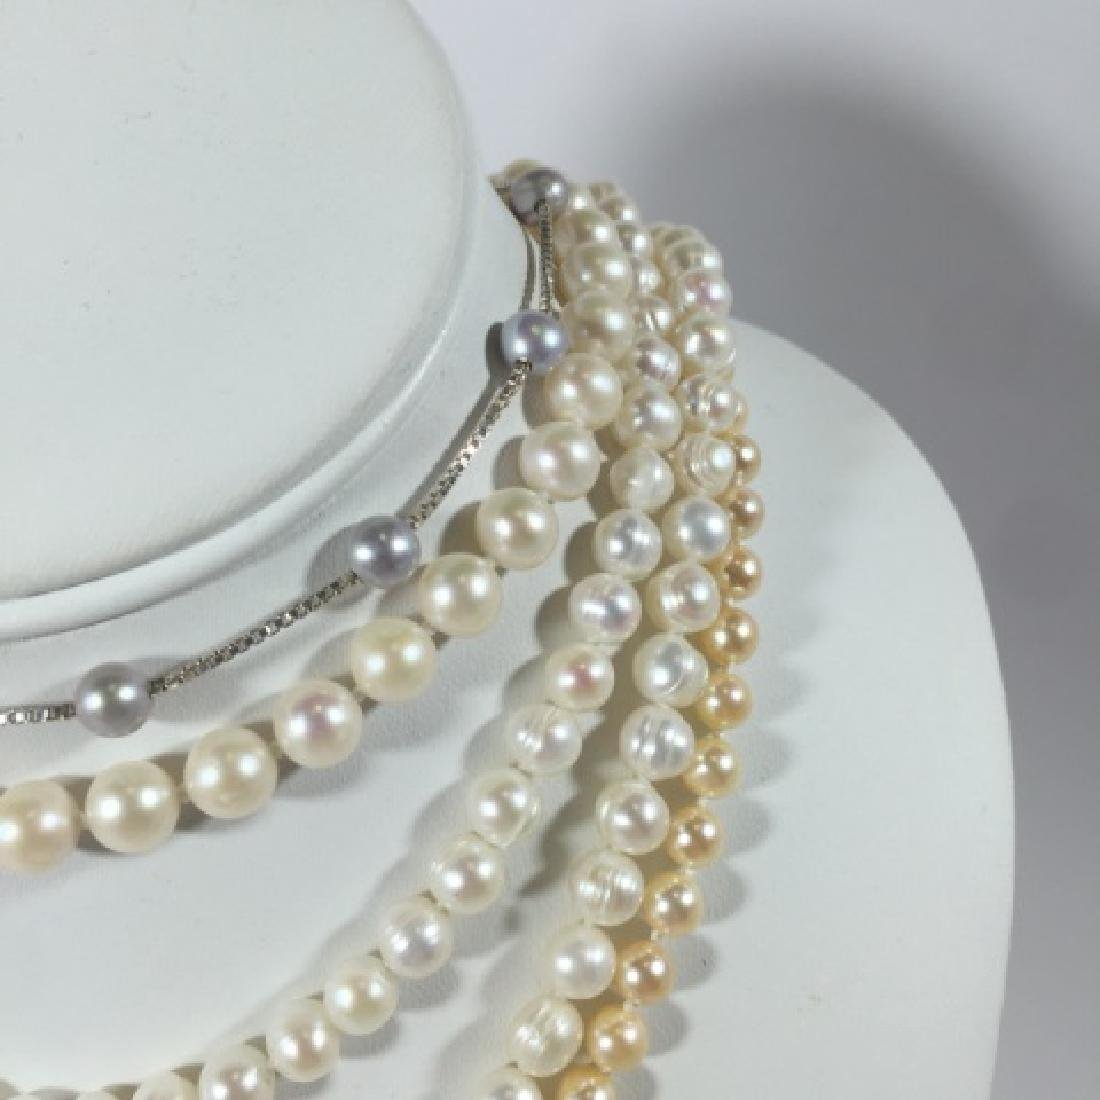 Group of Pearl Necklaces 2 Gold 1 Silver Clasp - 4